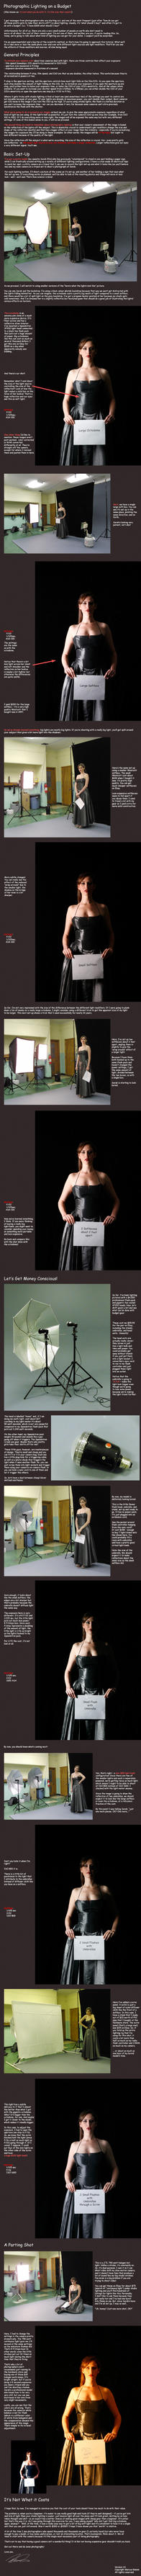 Photographic Lighting by mjranum-stock